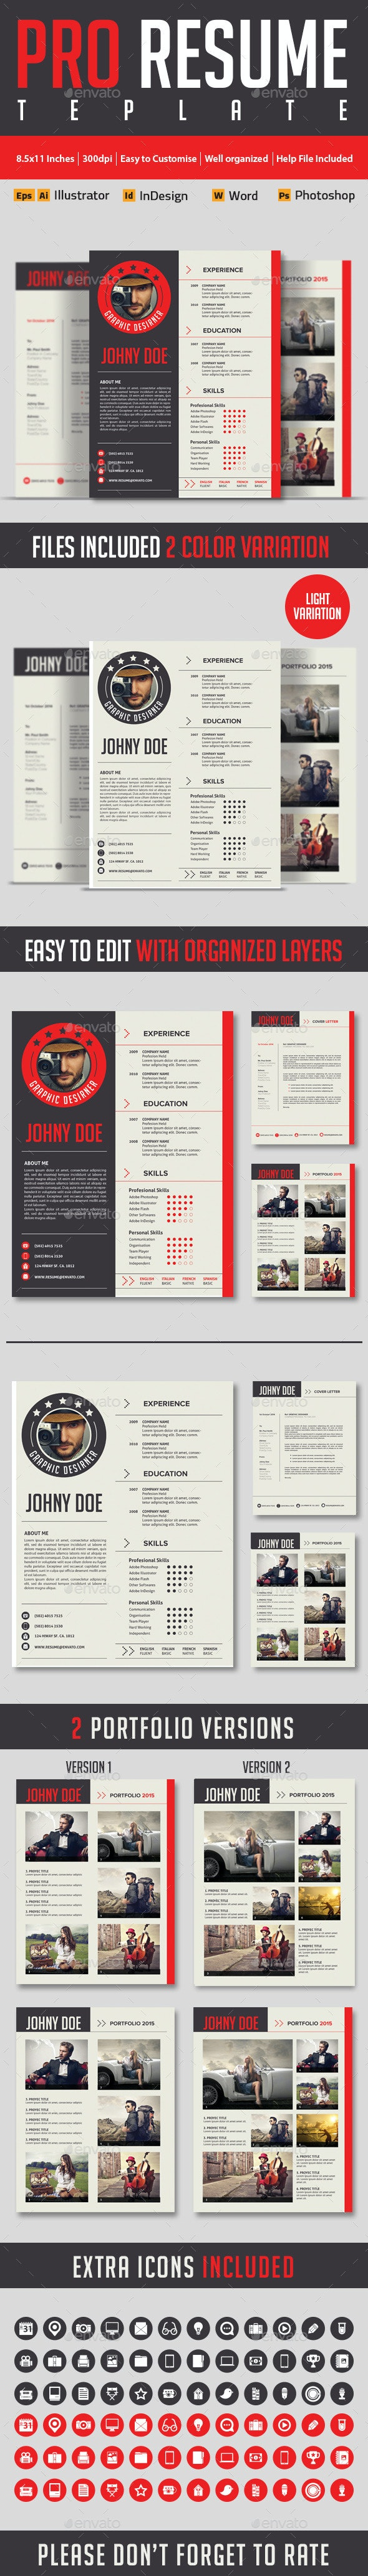 Modern And Profesional Resume Cv - Resumes Stationery